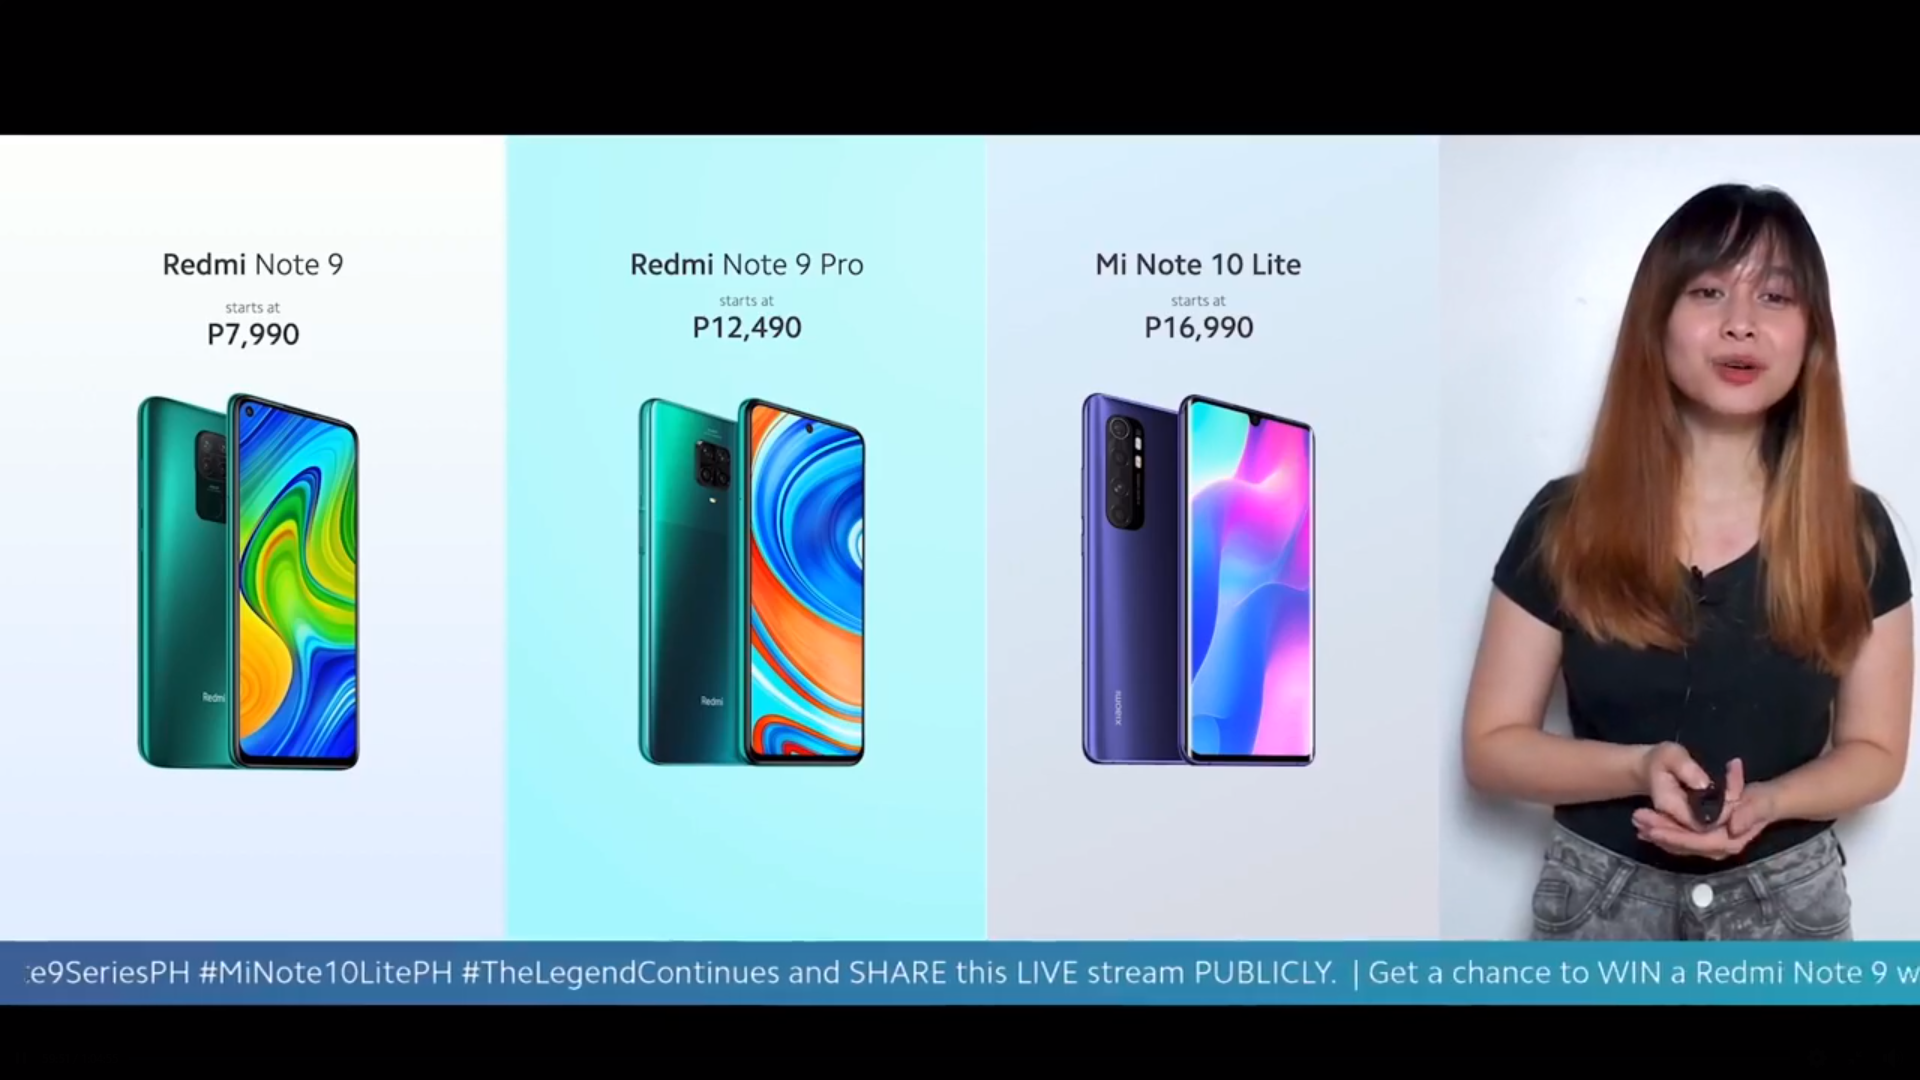 Redmi Note 9 Redmi Note 9 Pro Mi Note 10 Lite Philippines price release date